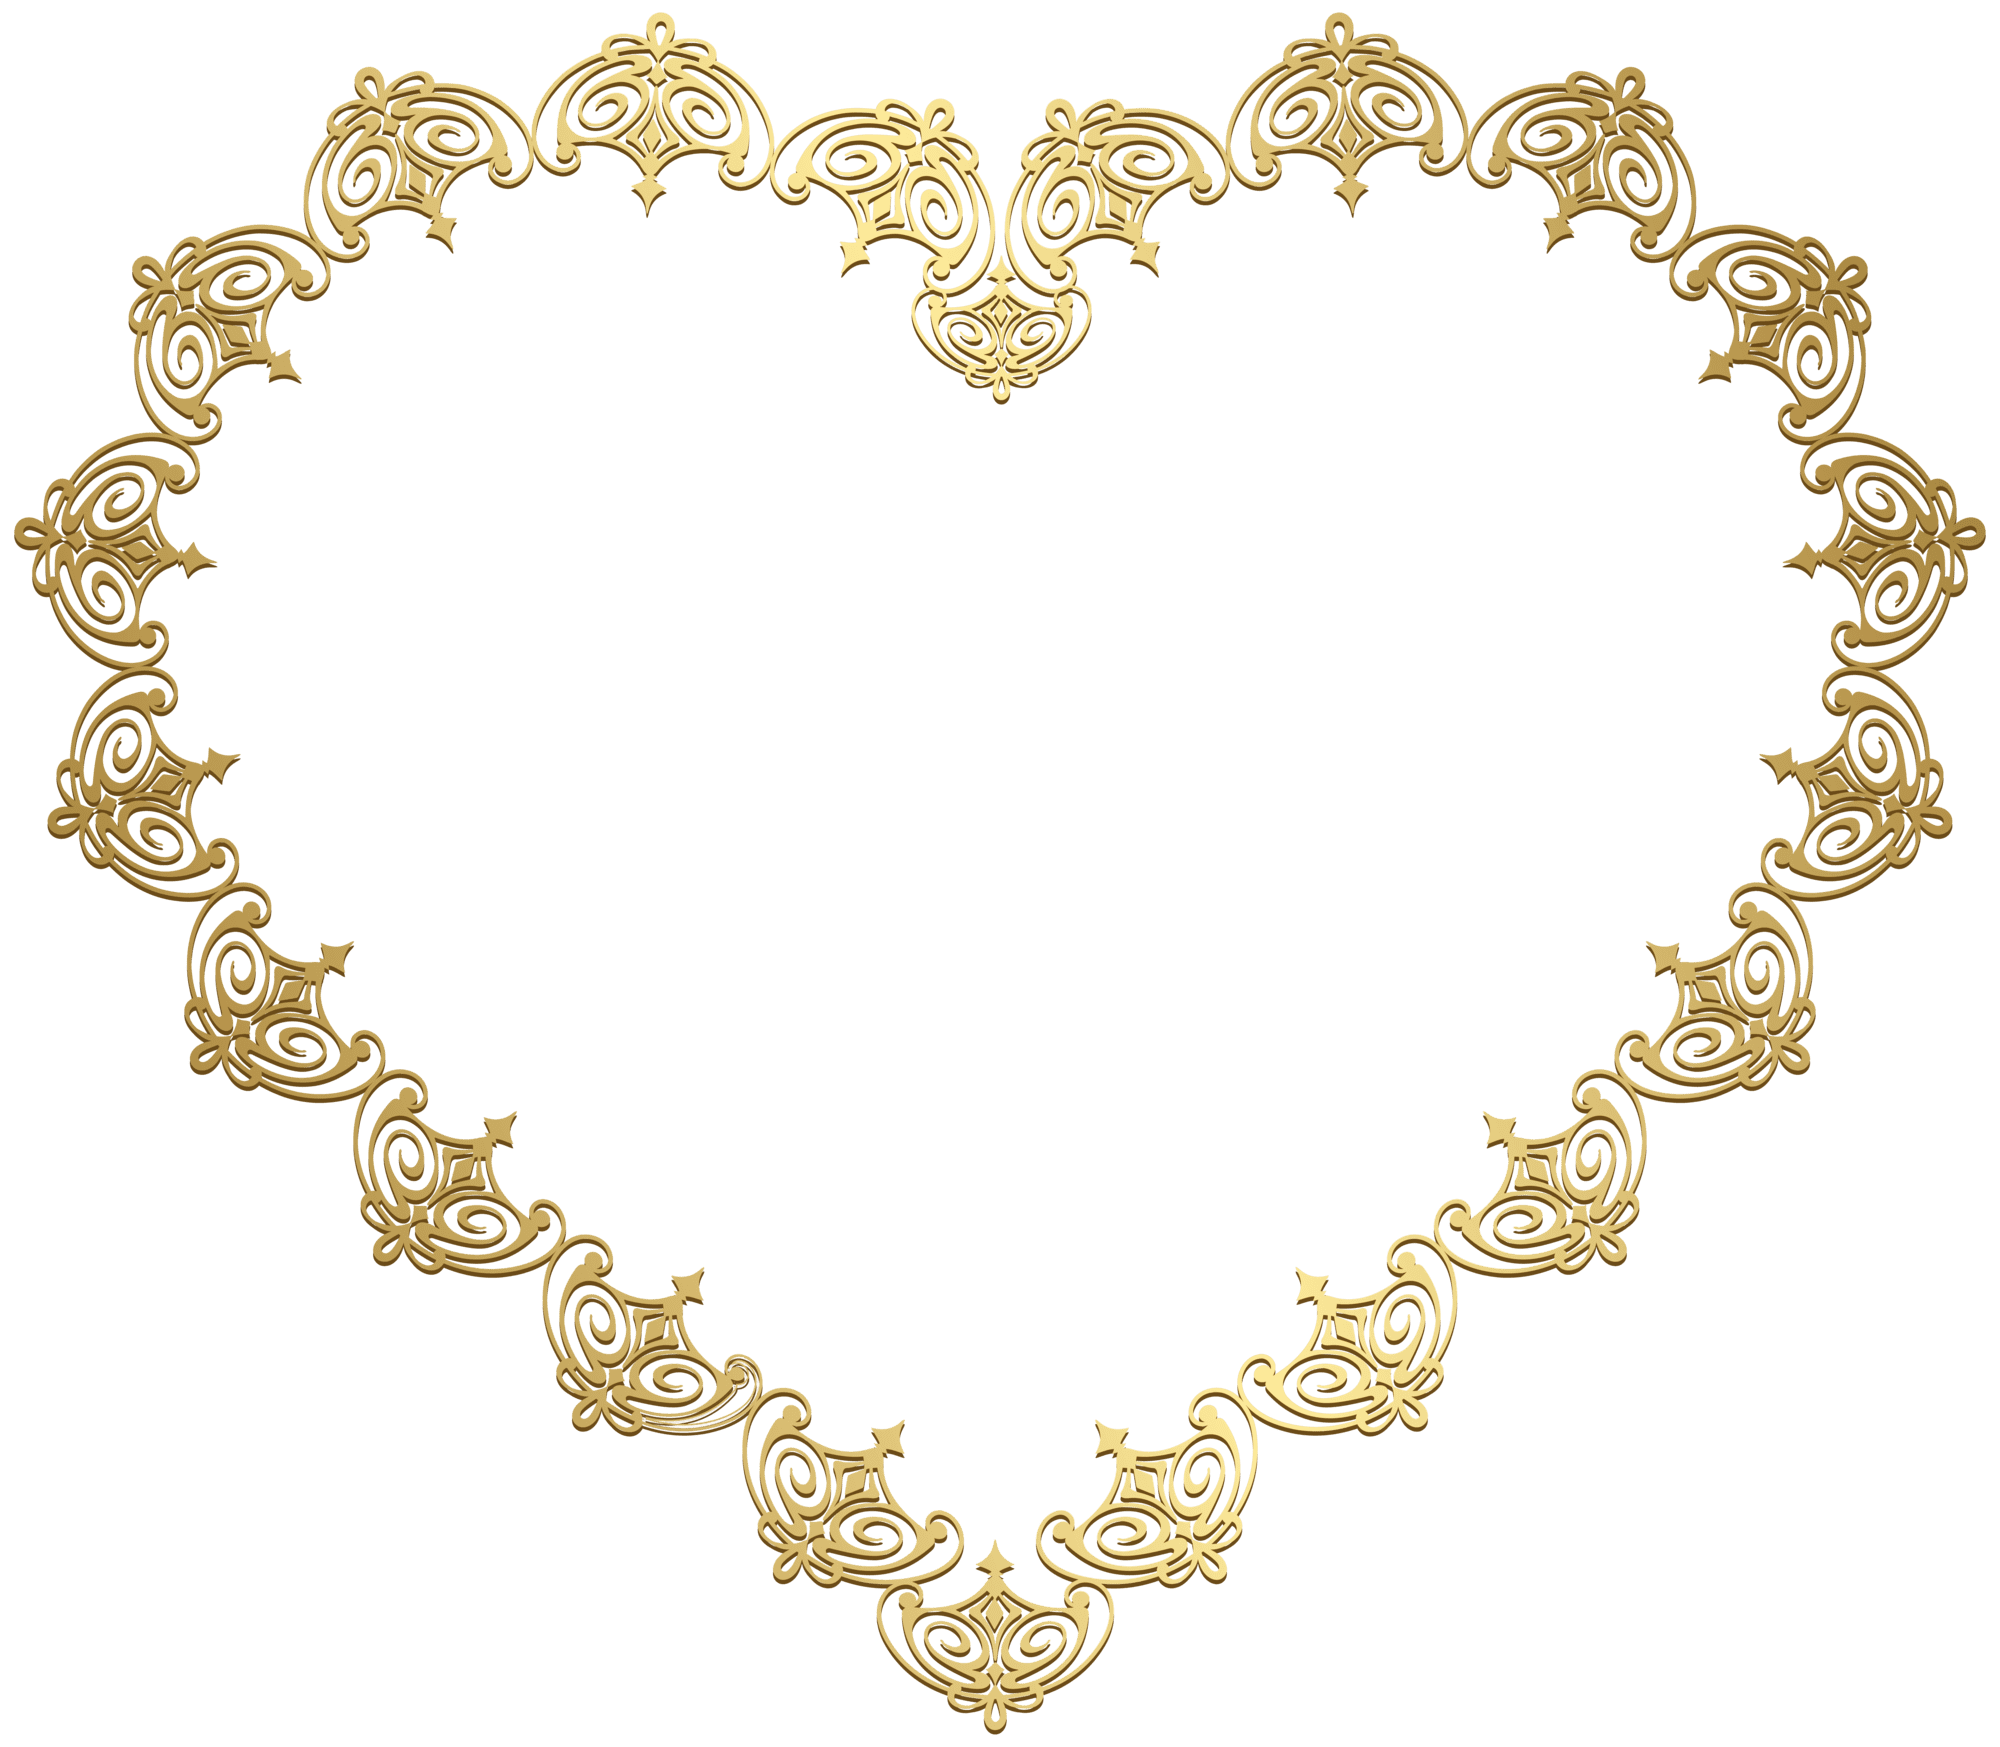 Heart Gold Transparent Clip Art Image